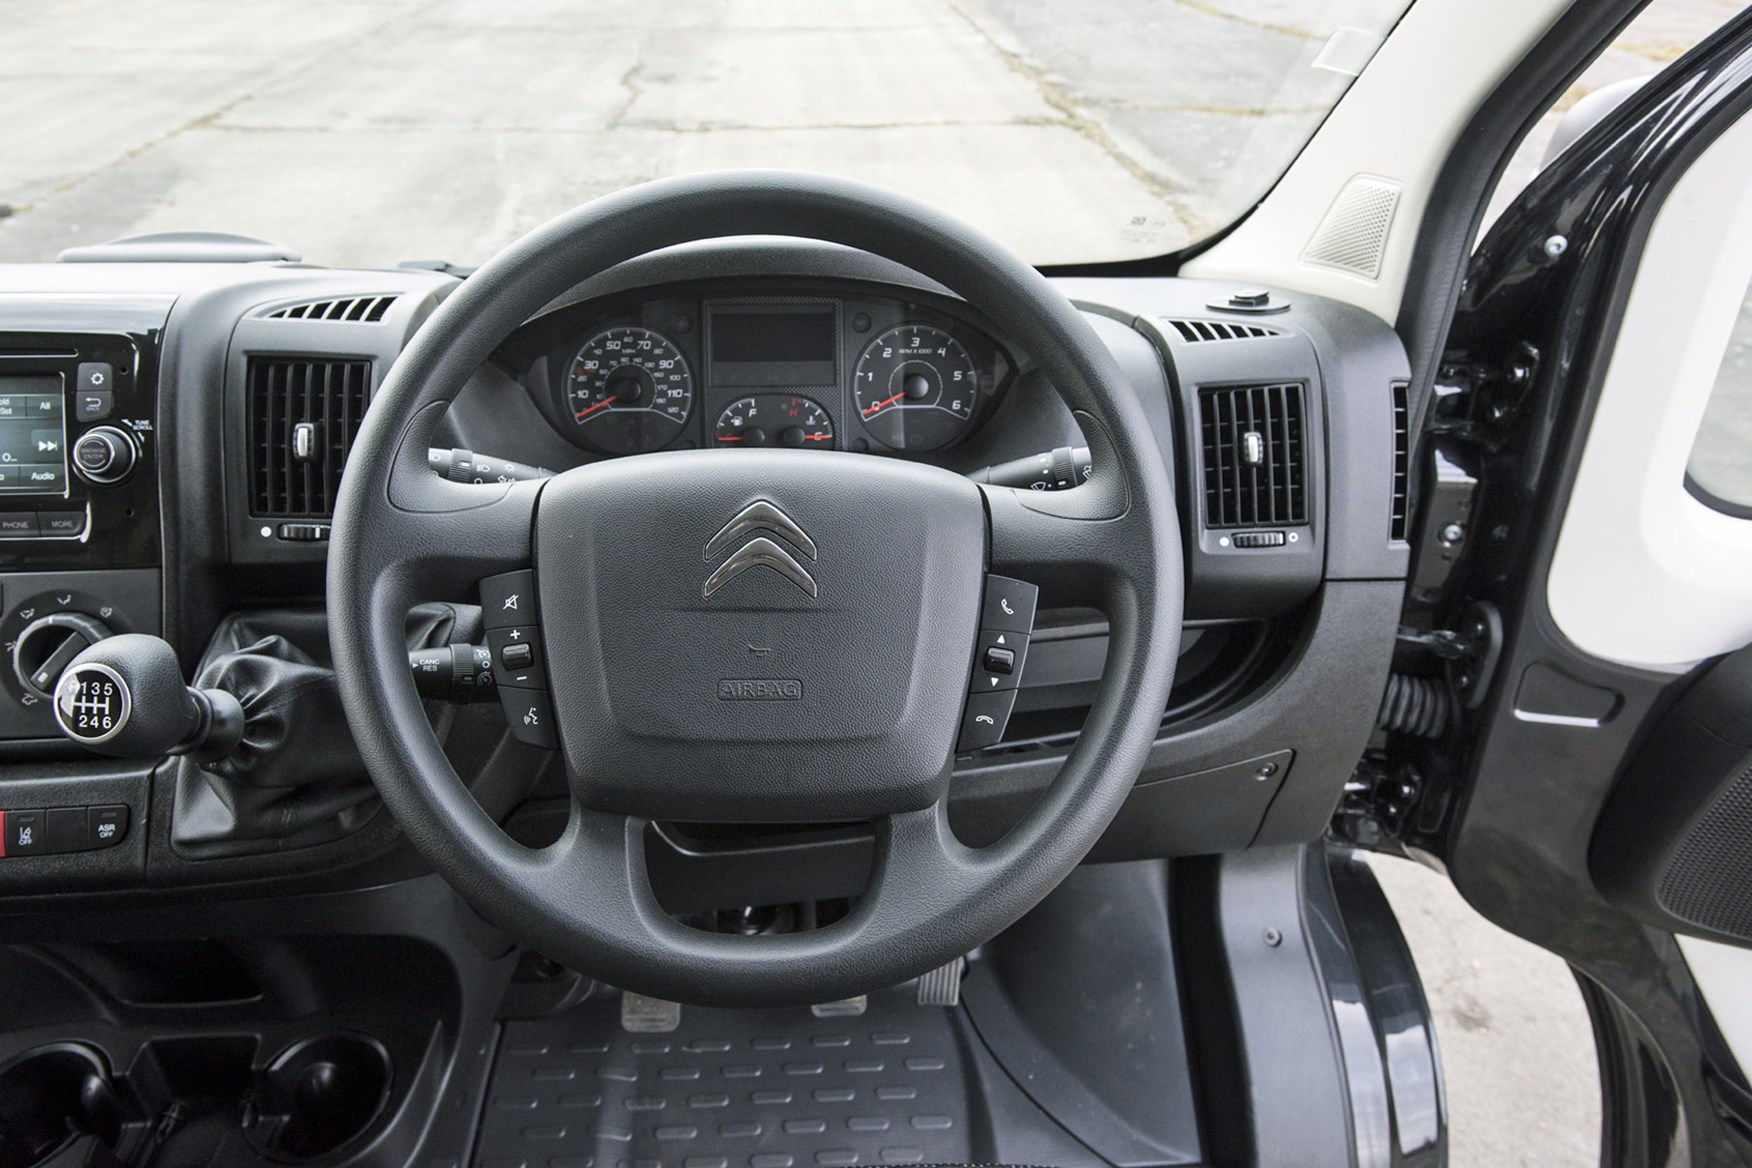 Citroen Relay review - cab interior, steering wheel